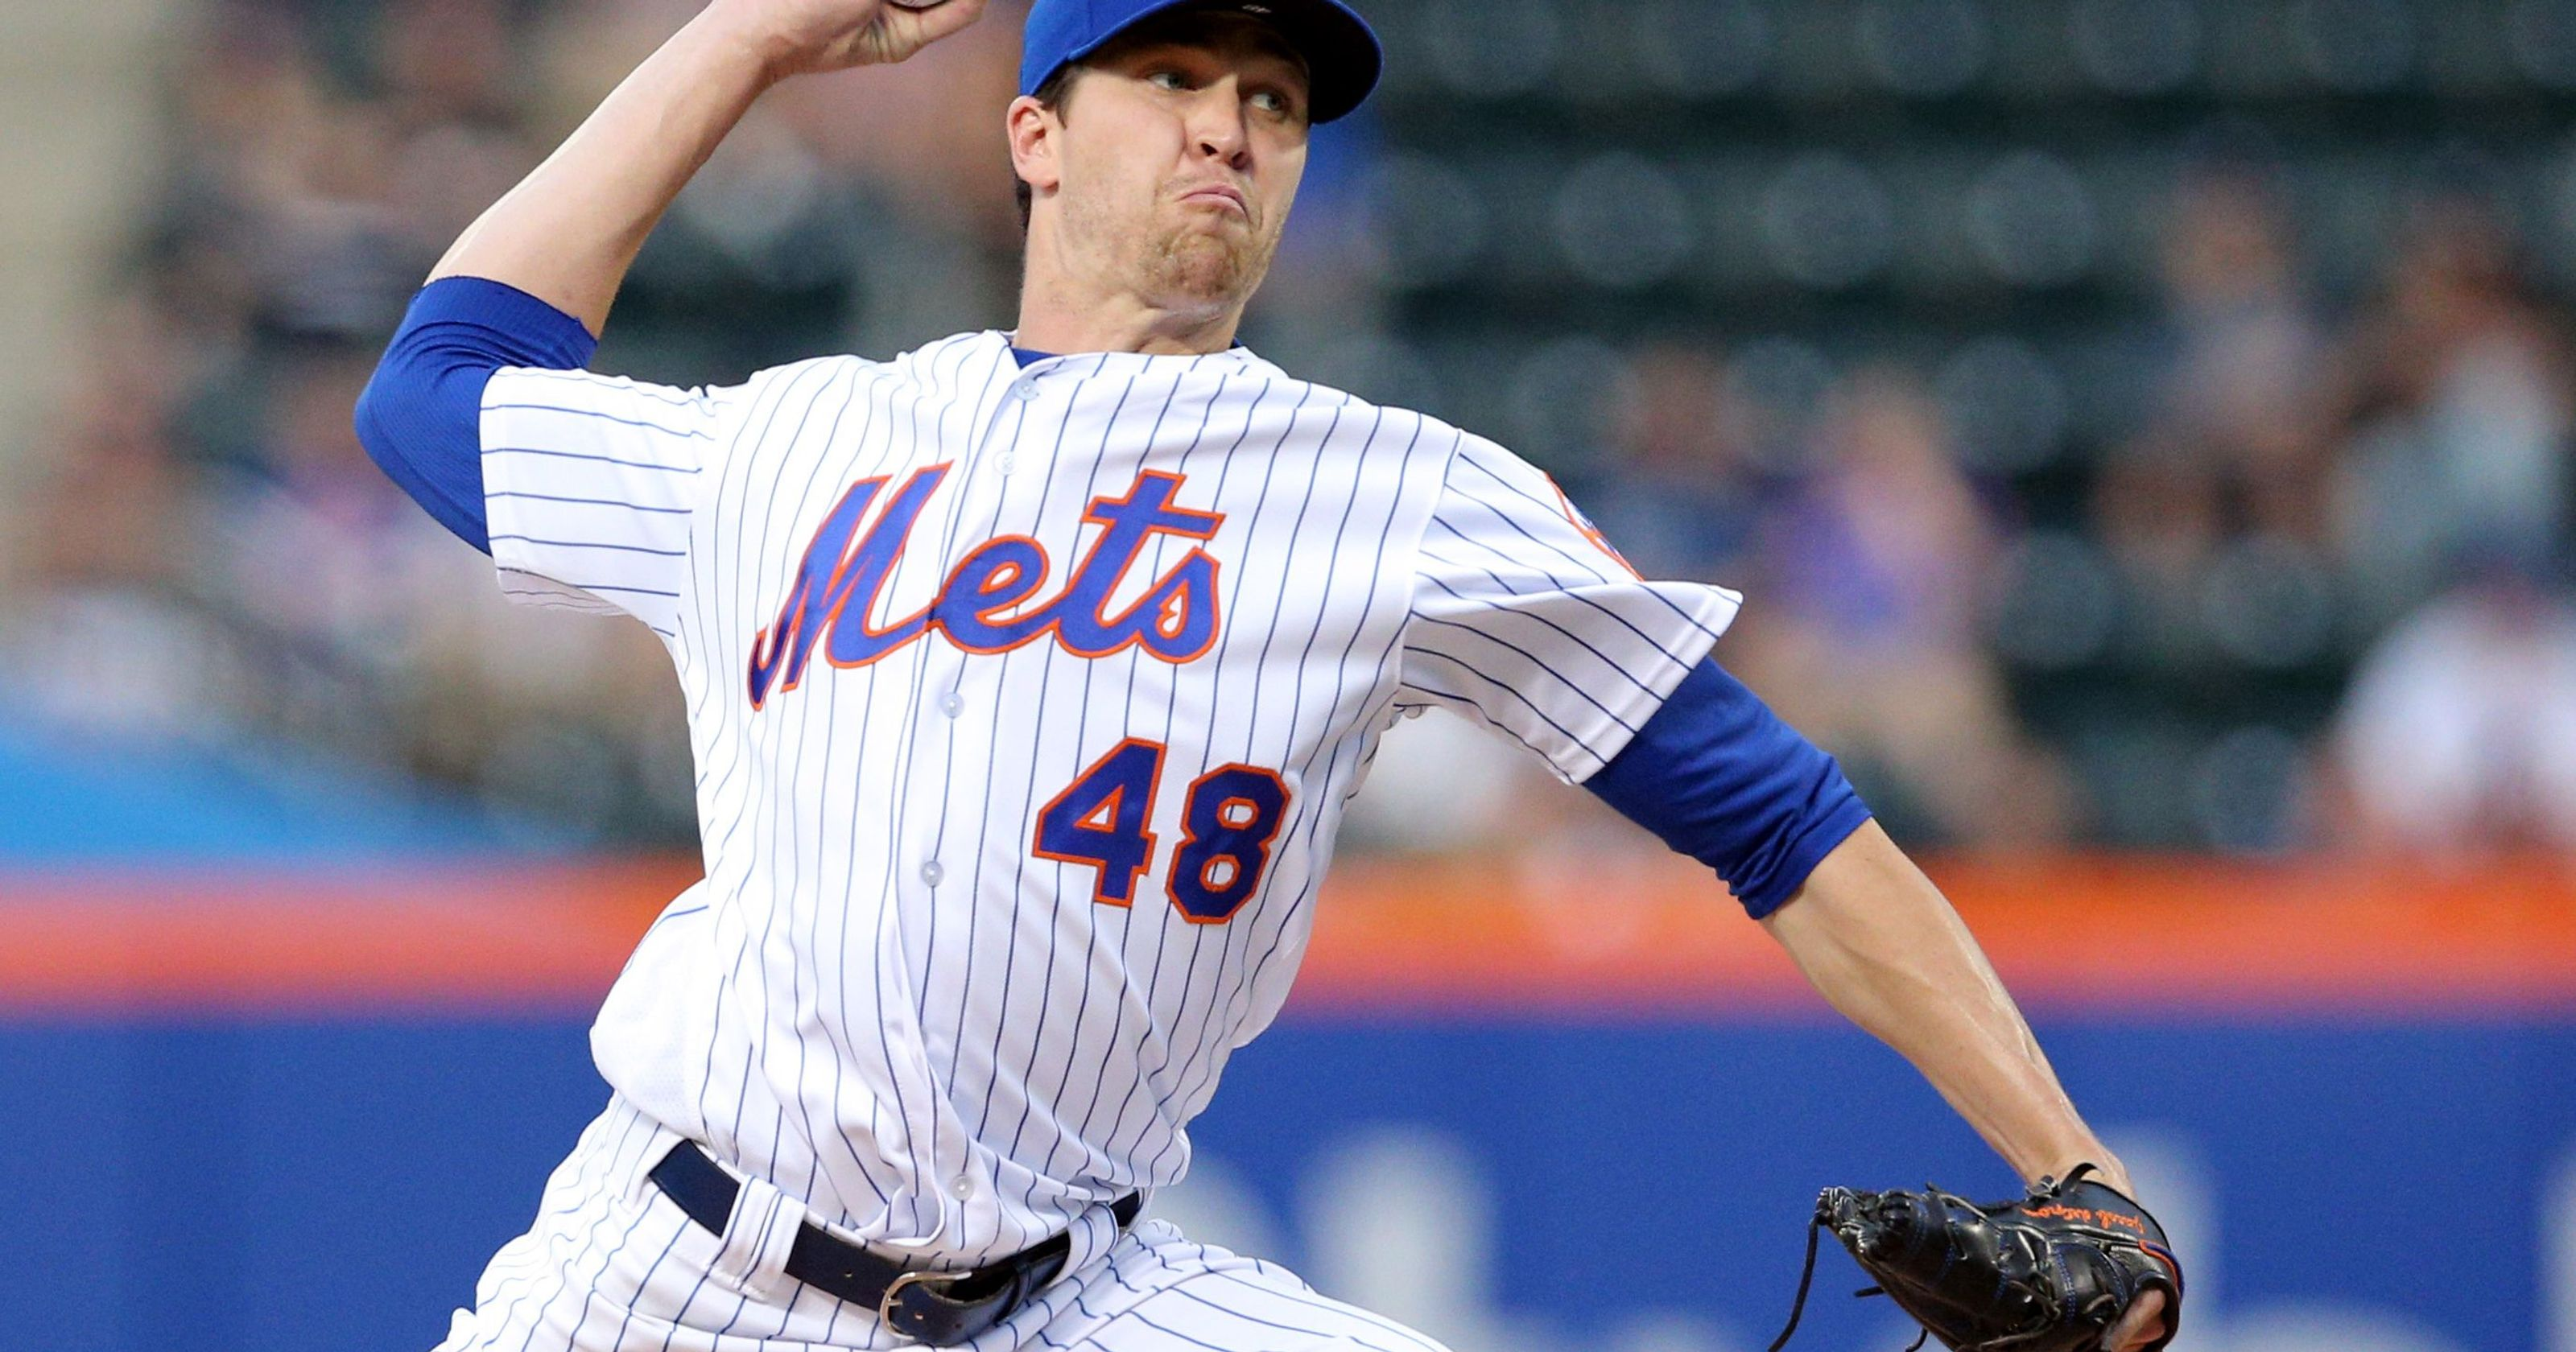 Monday Mets: The Case For Keeping deGrom